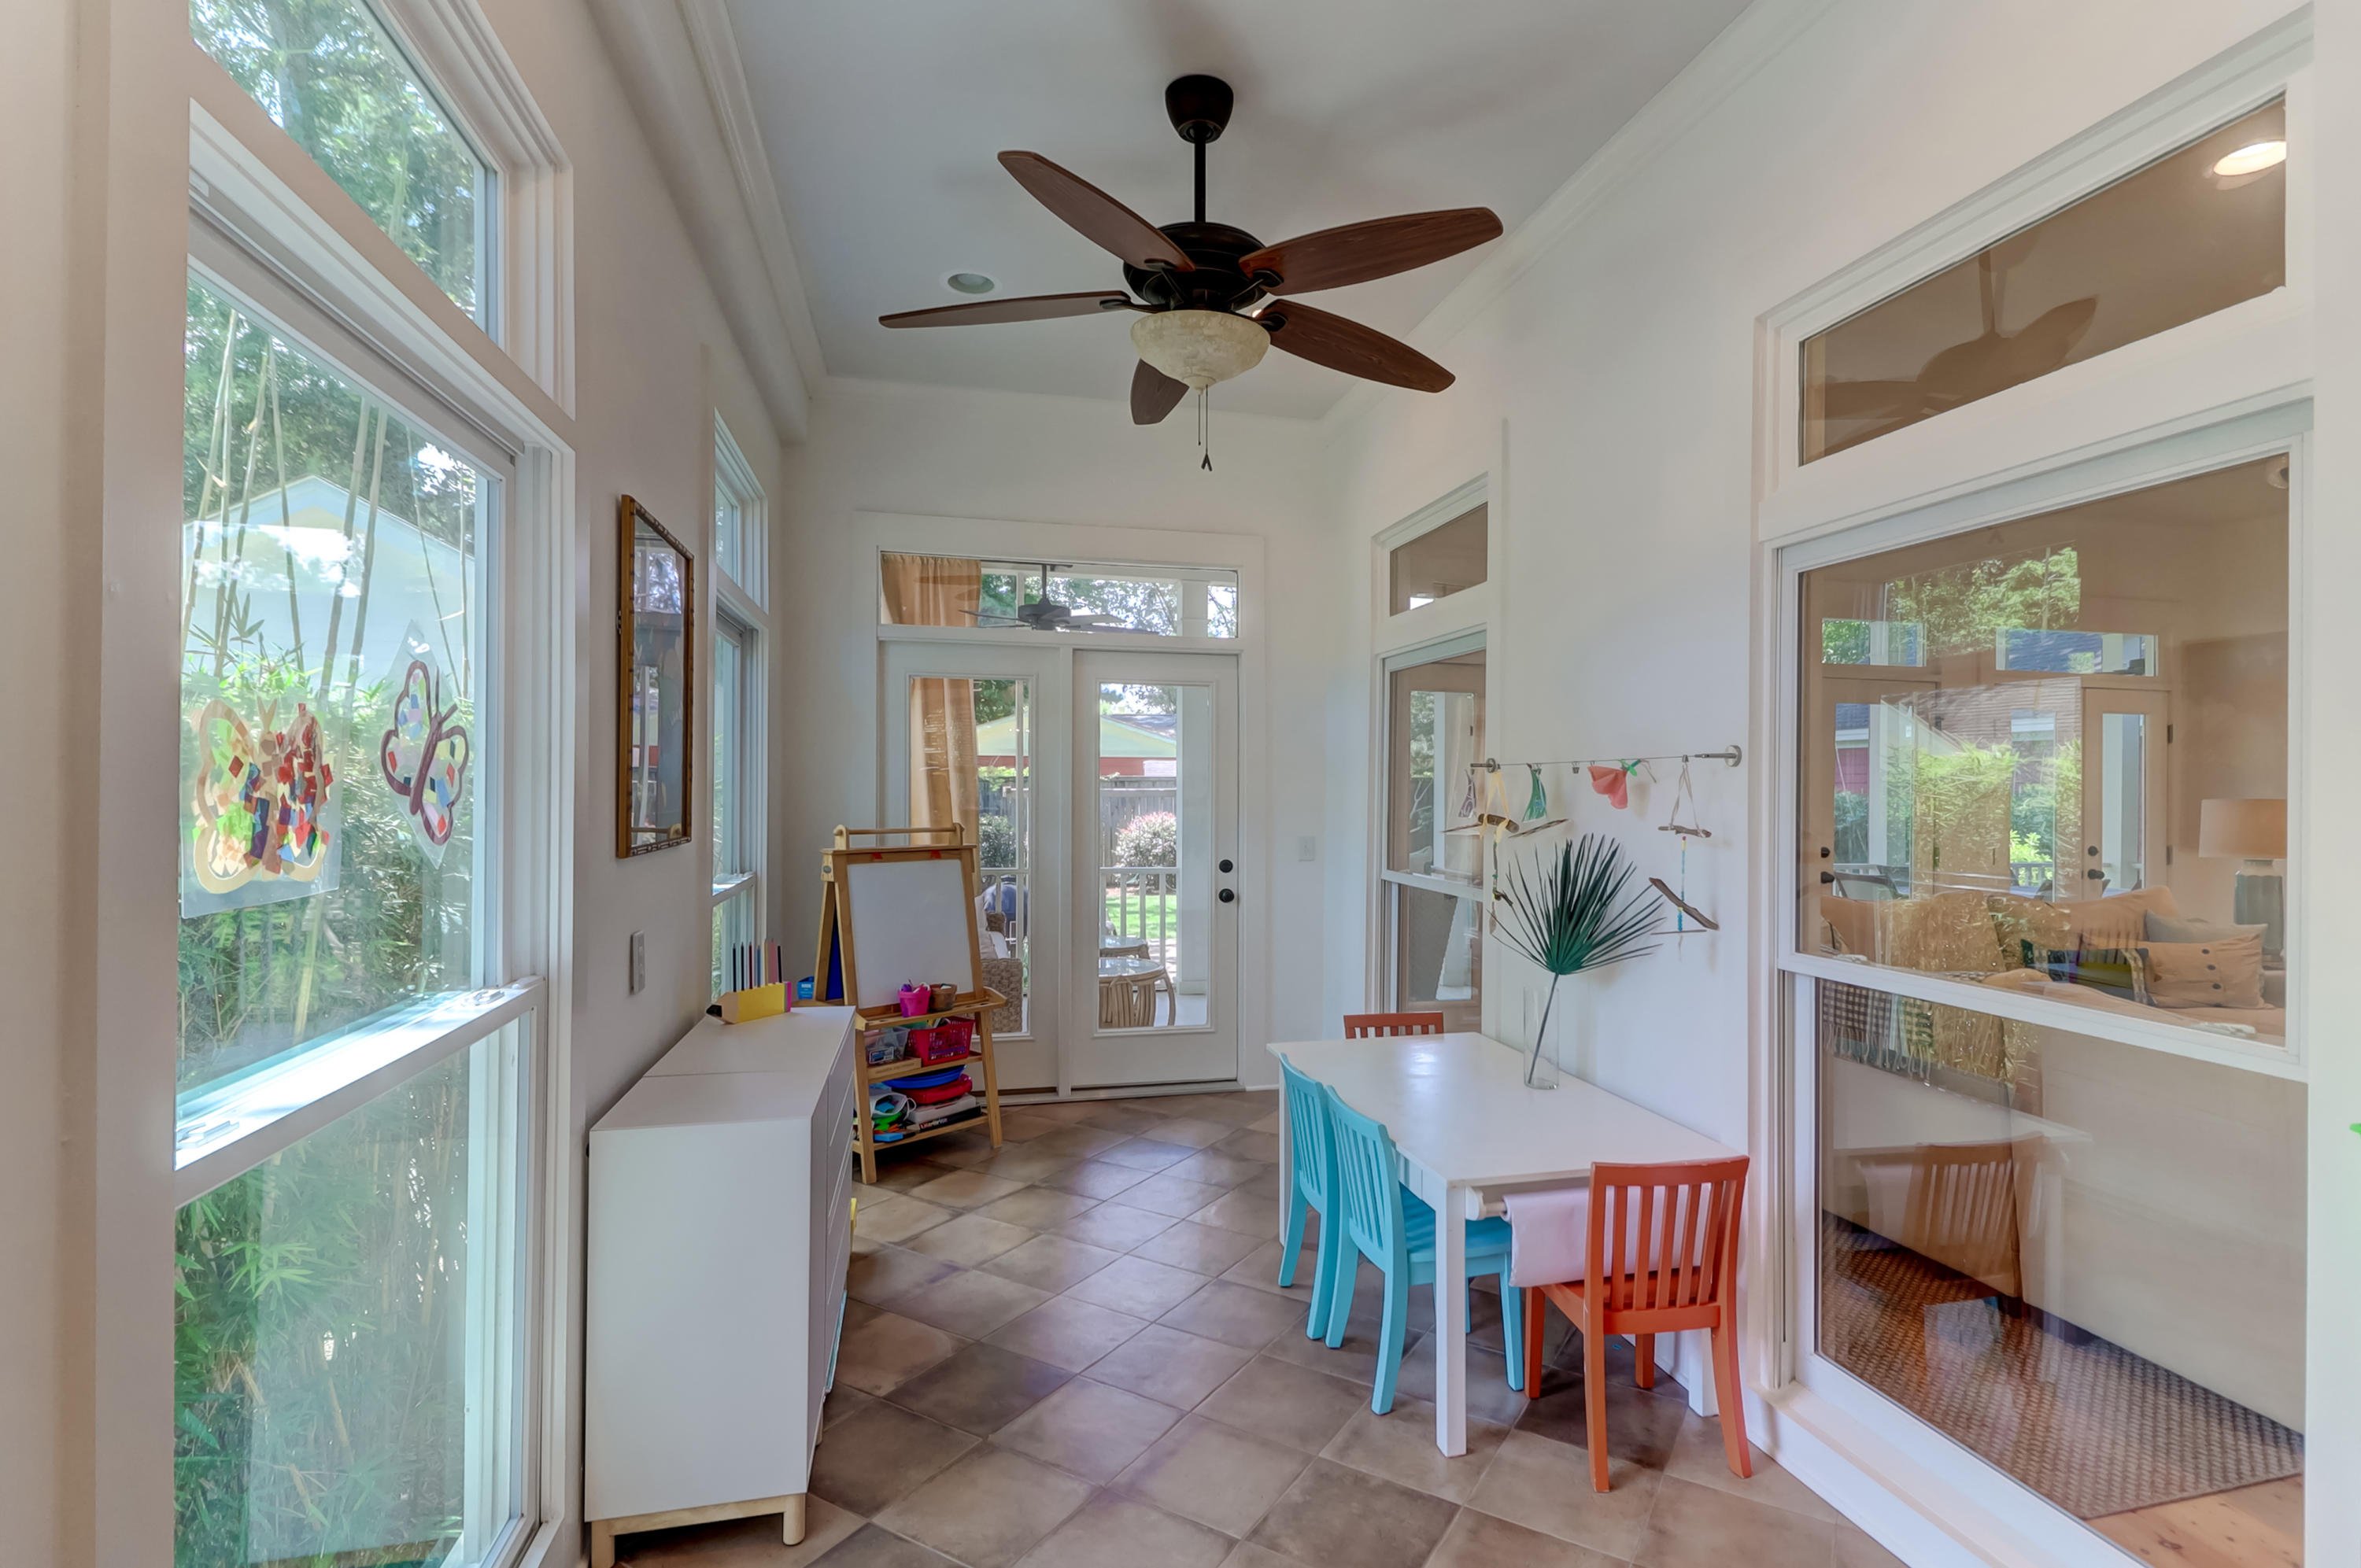 The Villages In St Johns Woods Homes For Sale - 5056 Coral Reef Dr, Johns Island, SC - 25